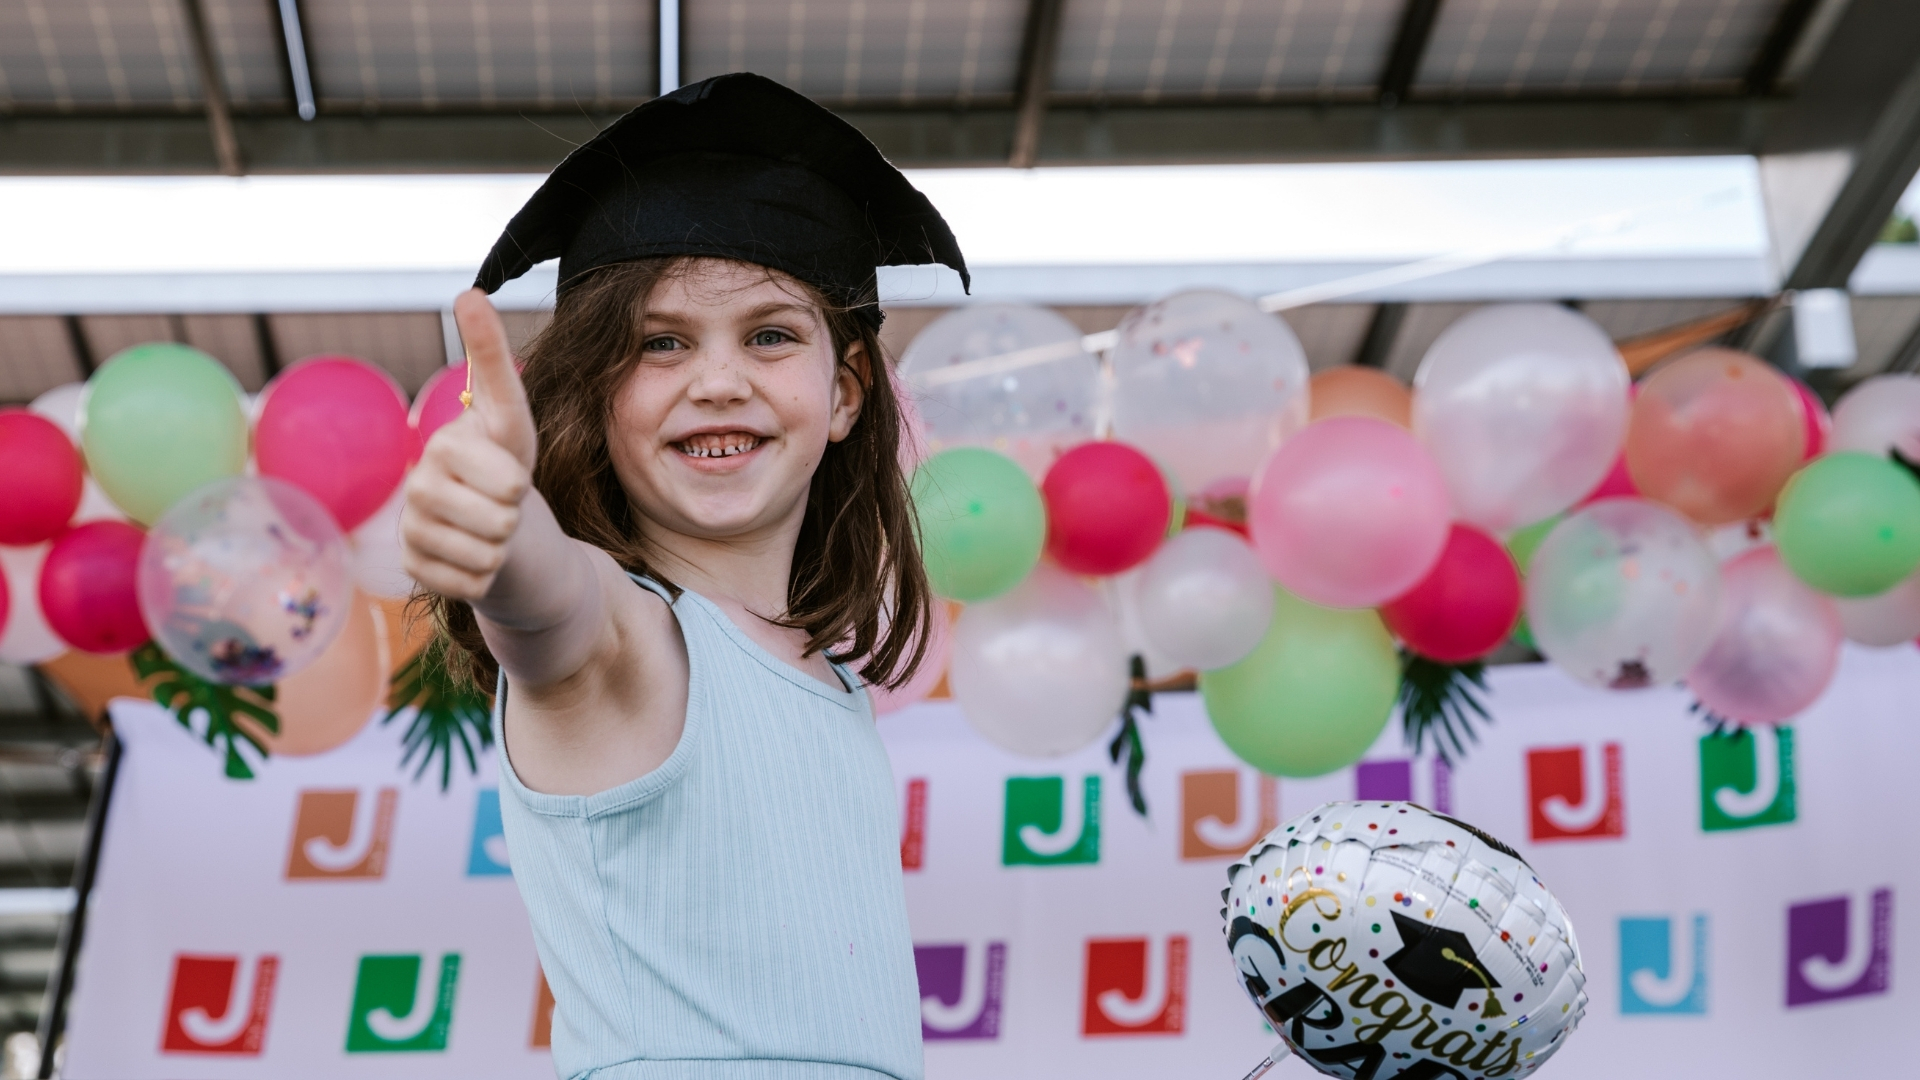 Hats off to our little graduates!